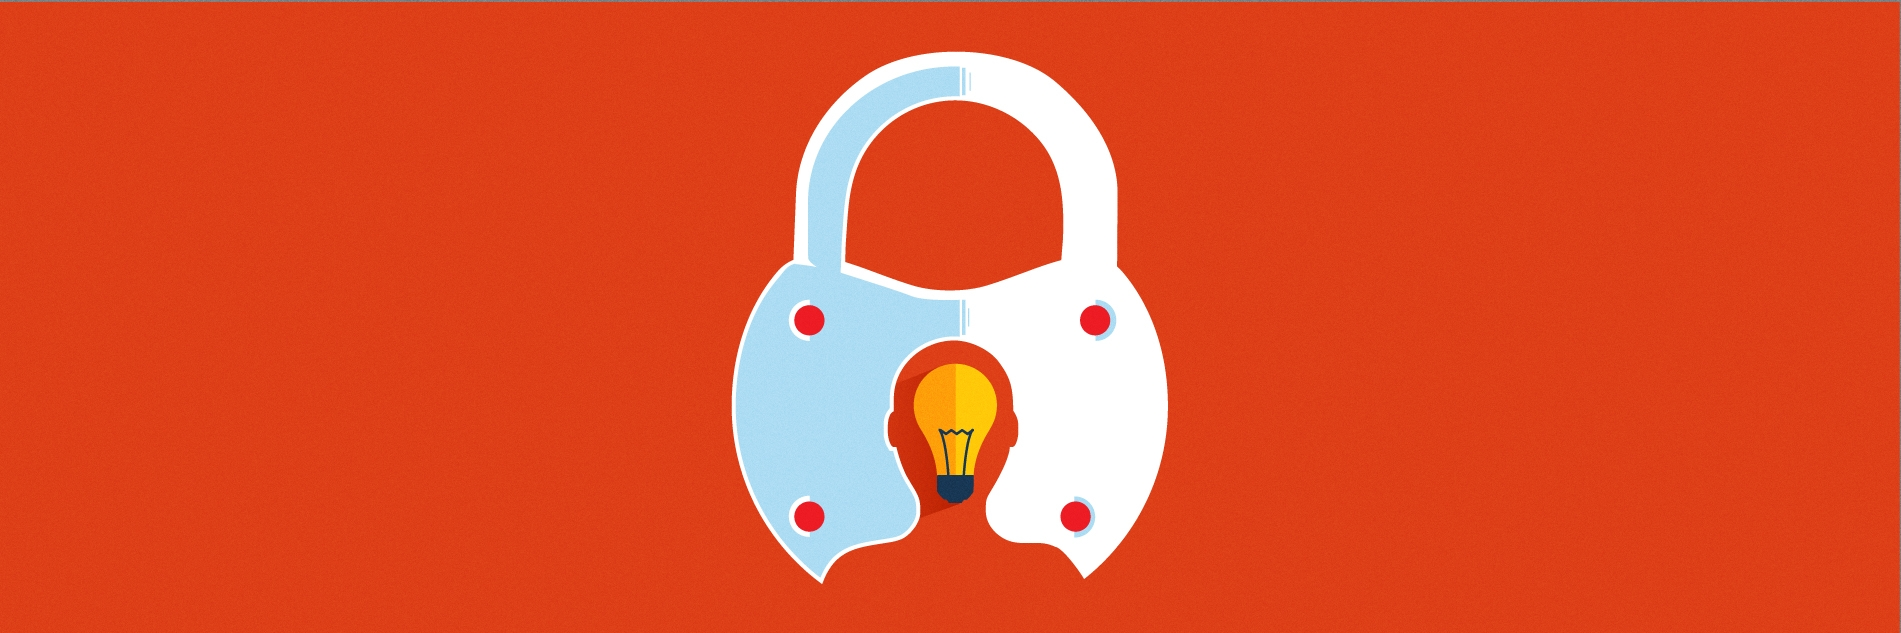 Own My Ideas protectyouridea I Have an Idea for an Invention! Now What?